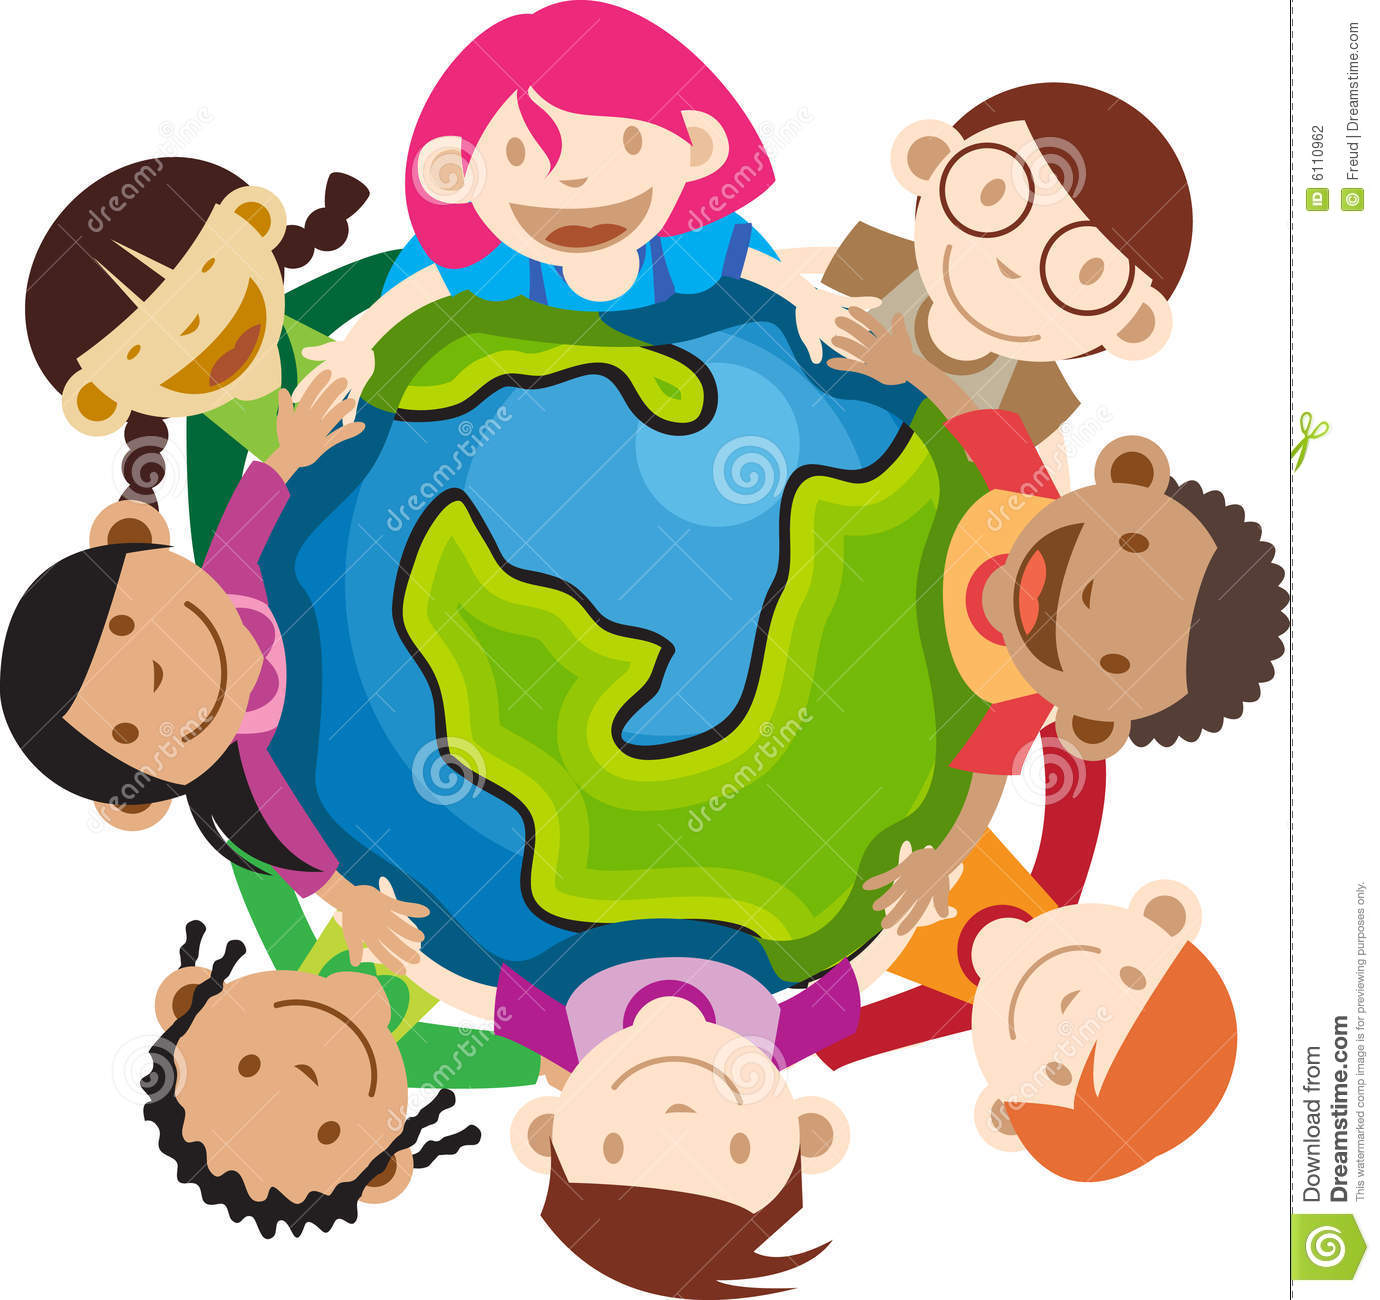 Ethnic Clipart - Clipart Kid